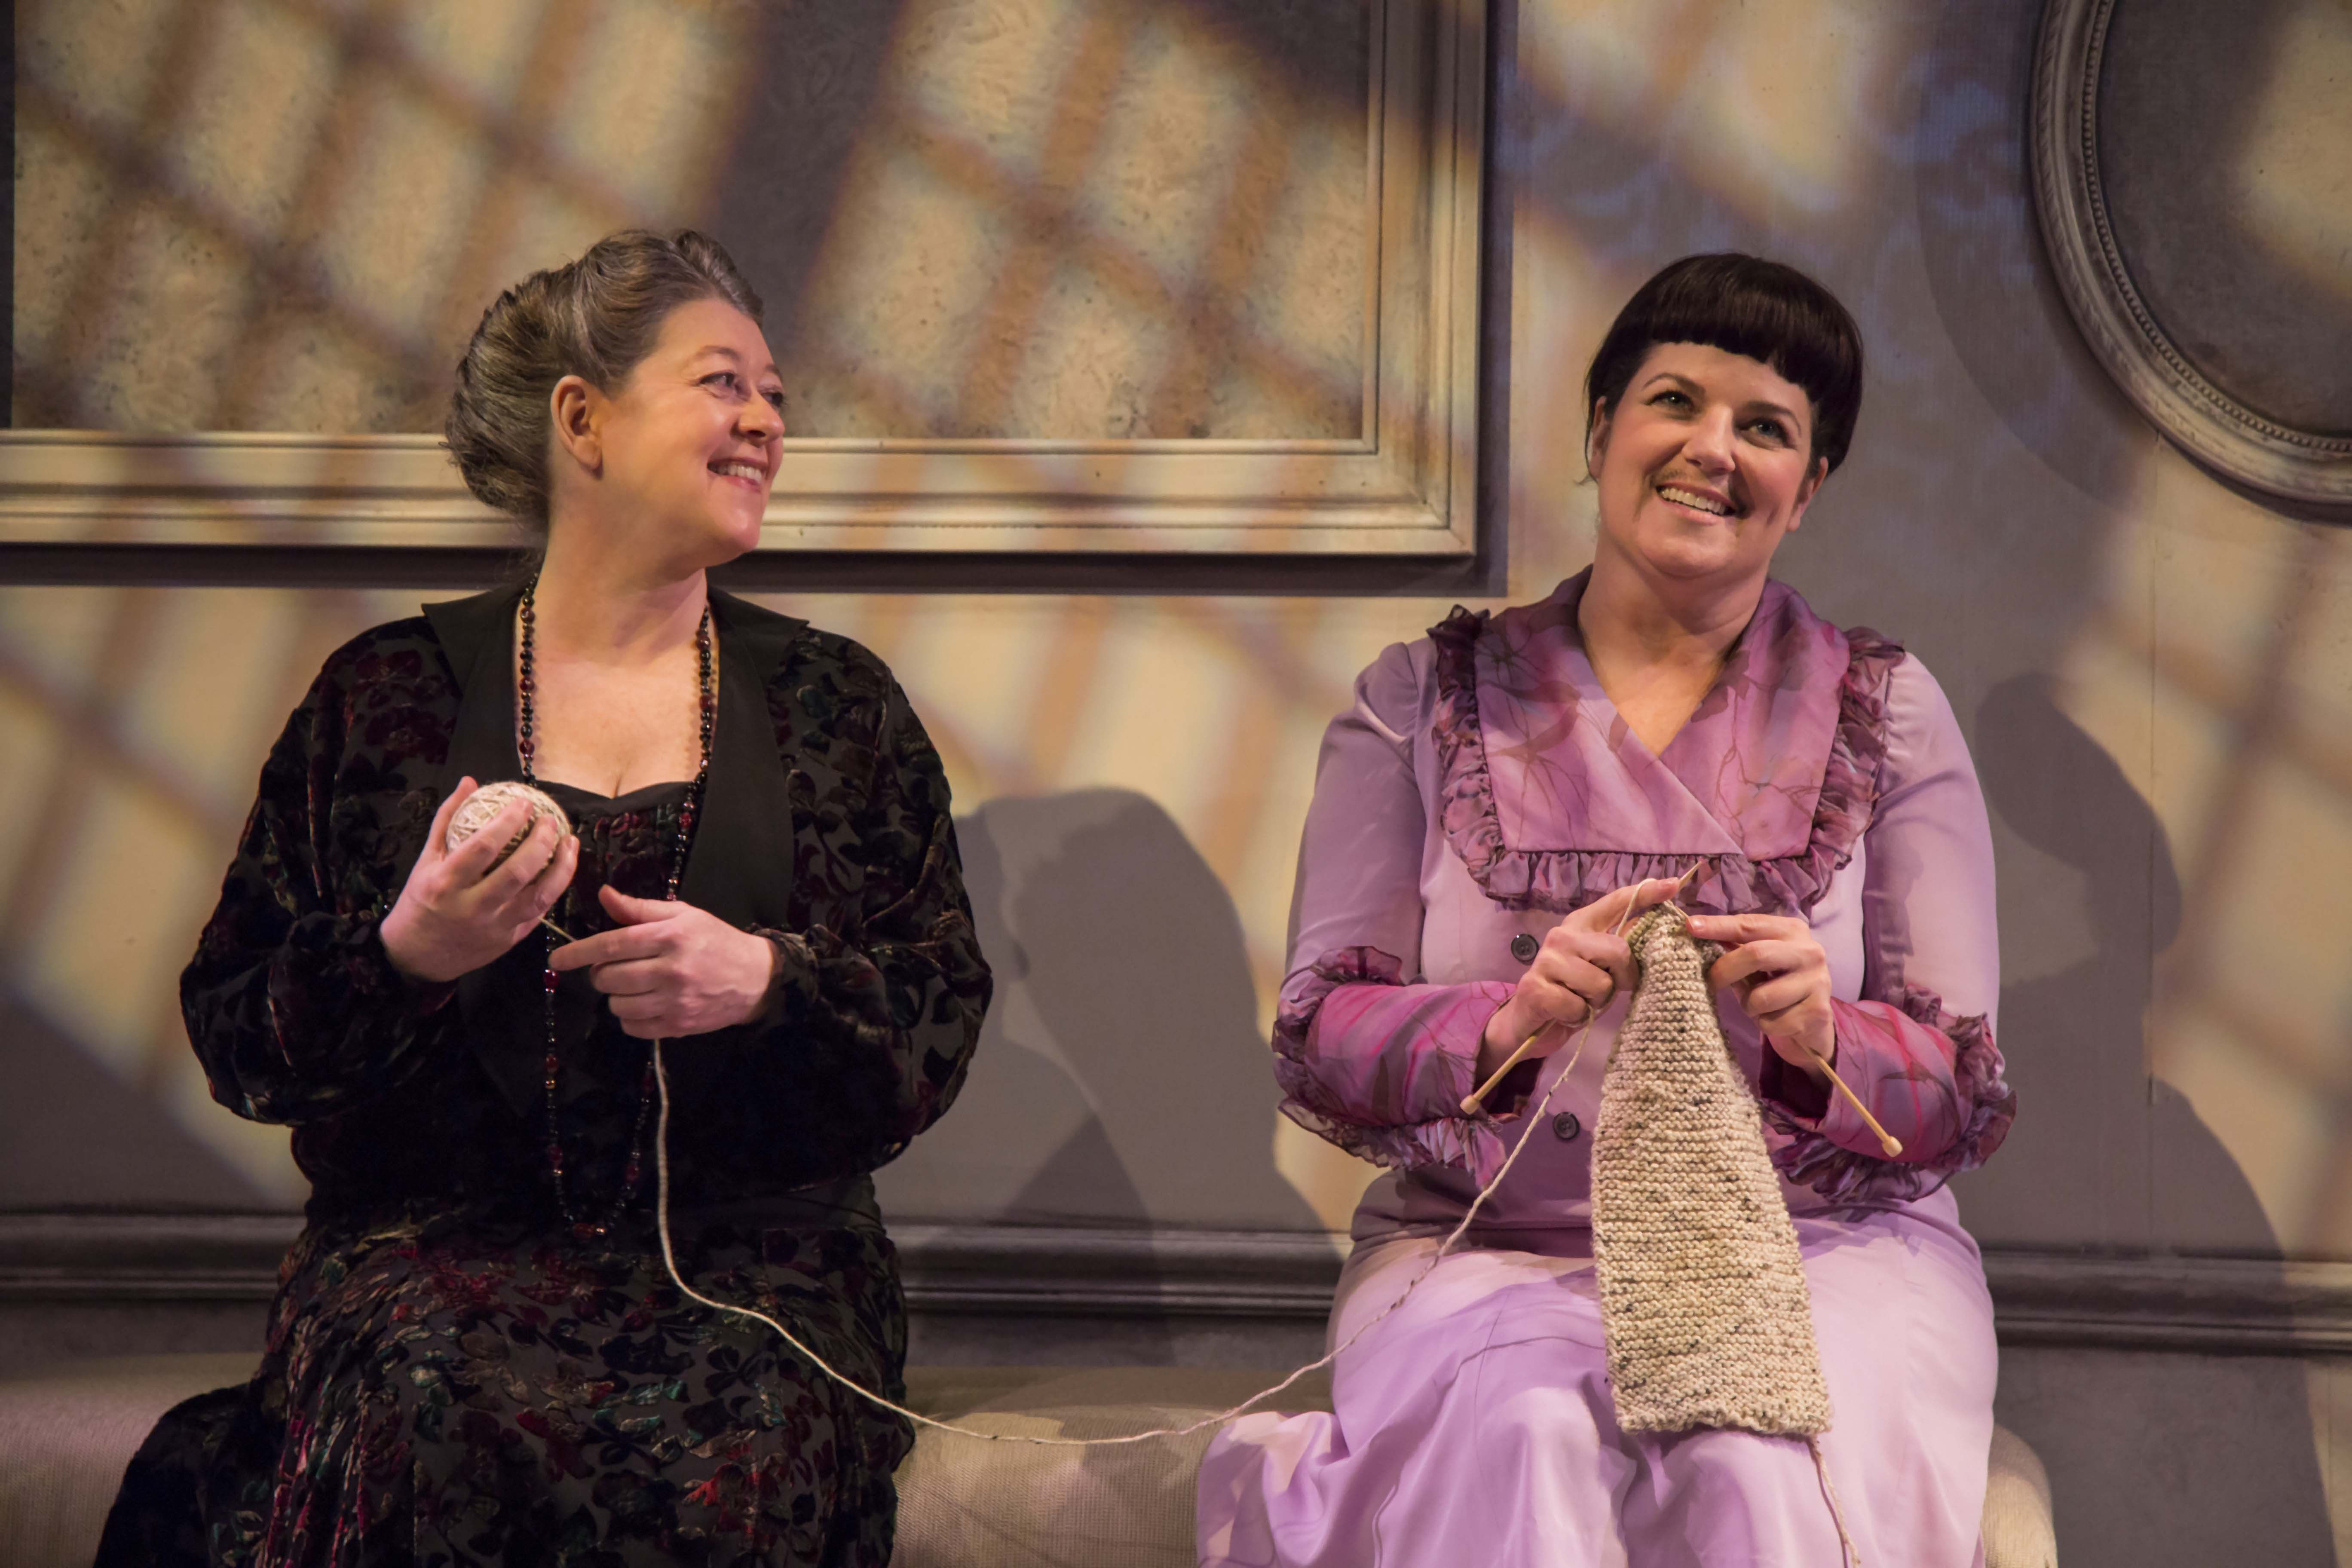 Two women knit on stage